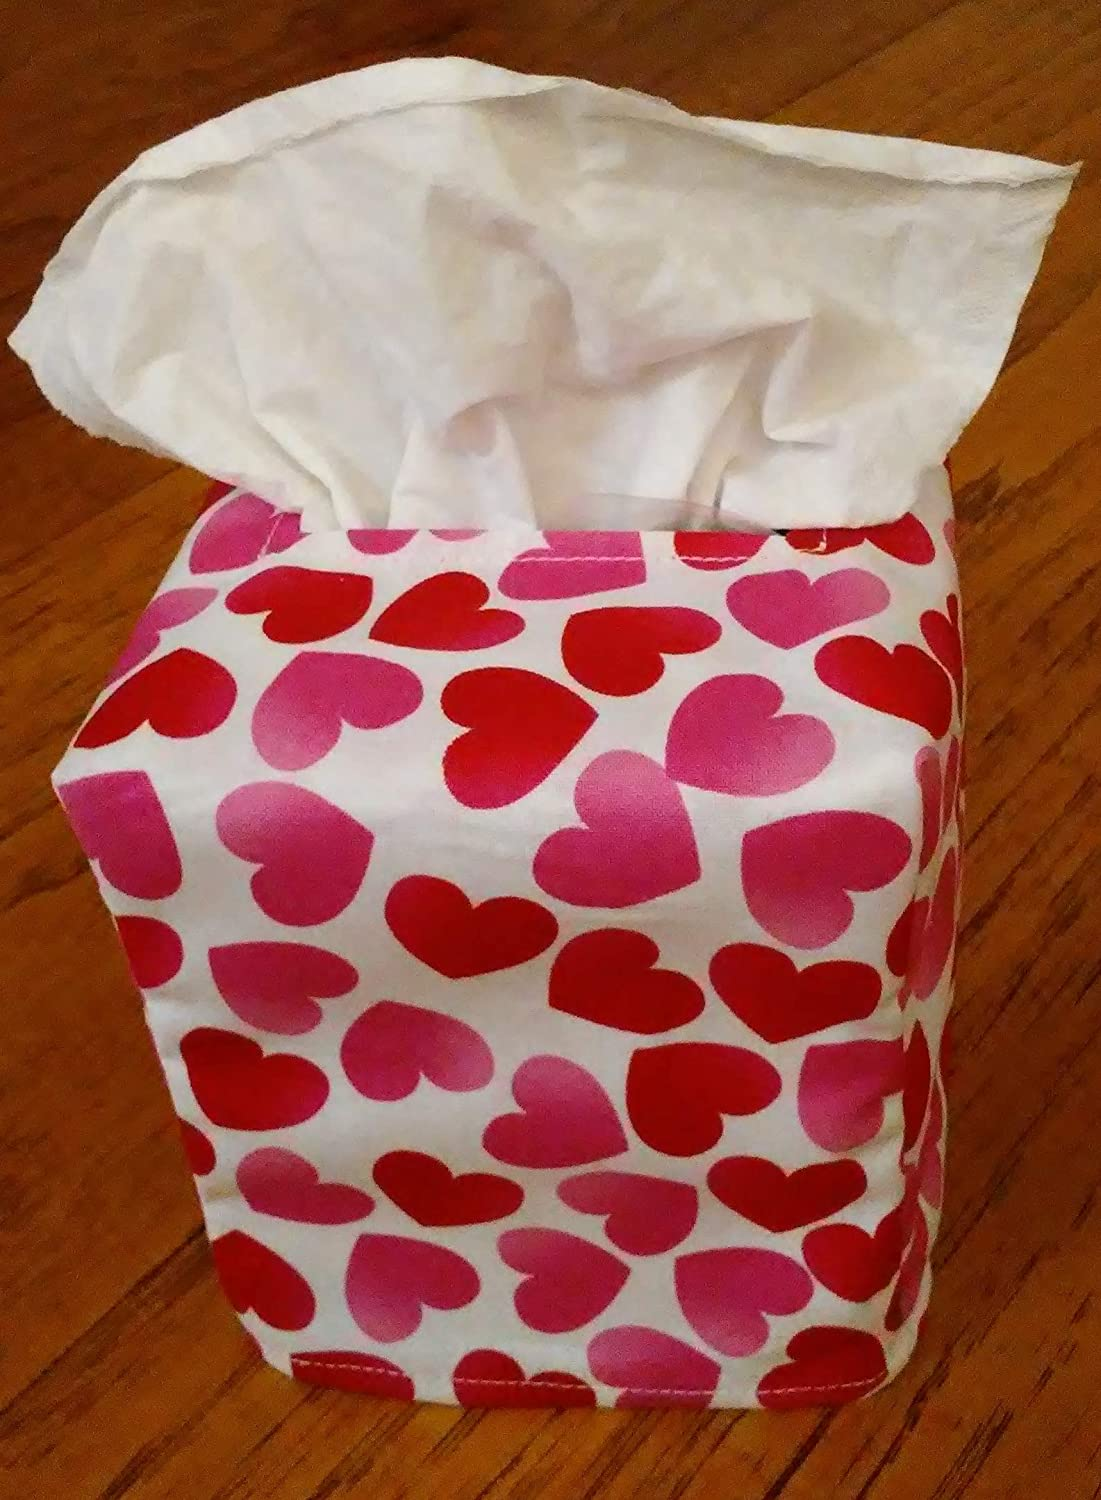 Red And Pink Hearts On White Fabric Square Tissue Box Cover